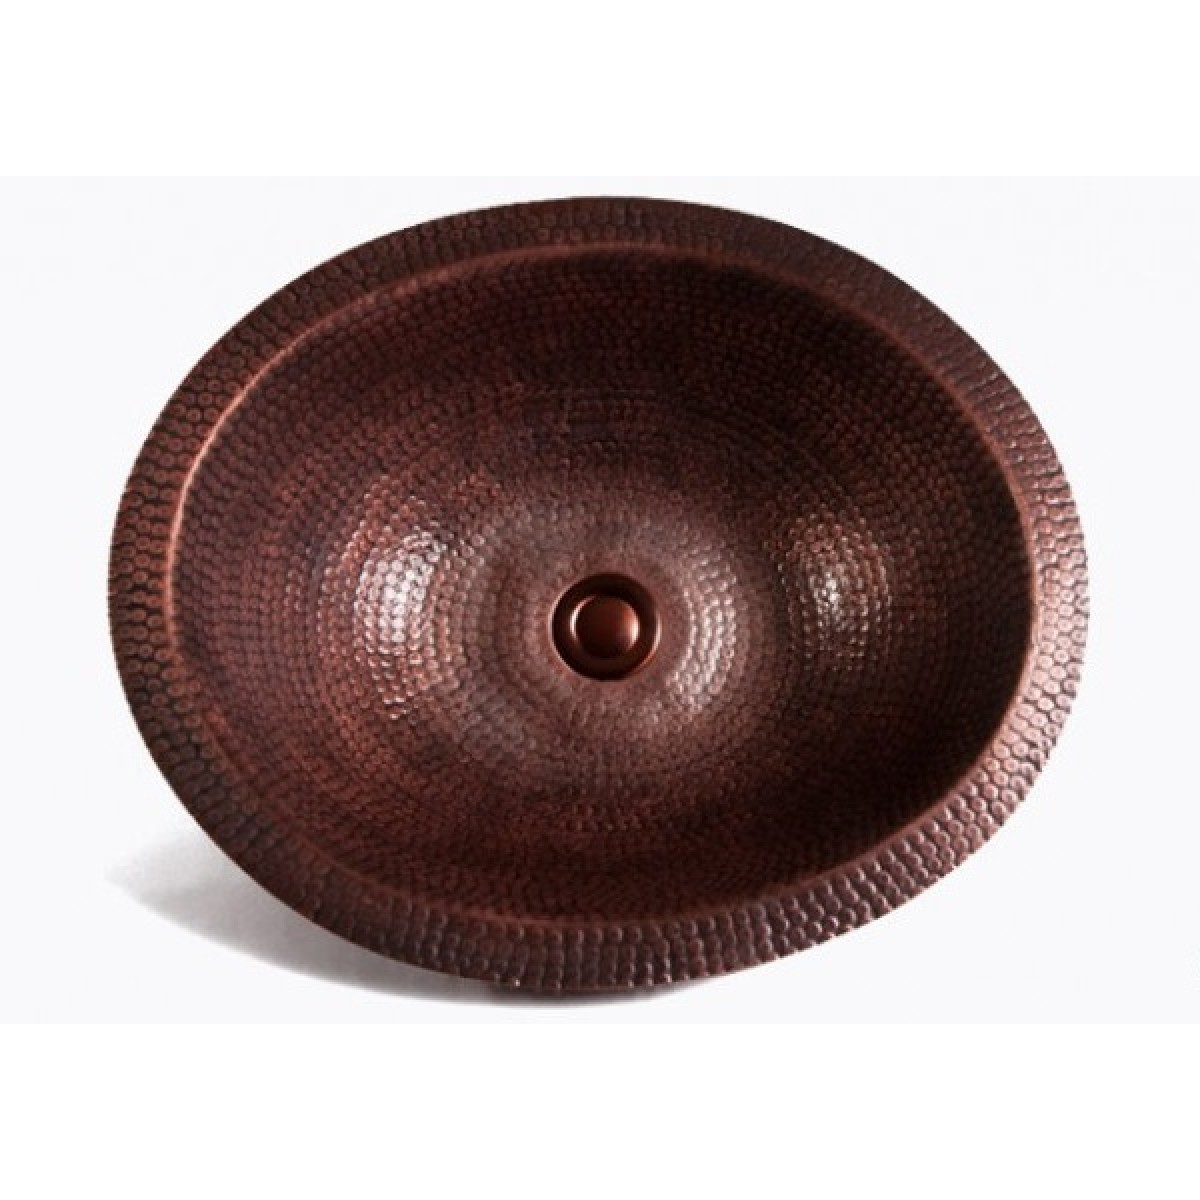 Oval Natural Coffee Hand Hammered Finish Copper Undermount Drop In Bathroom Sink 17 X 14 5 1 2 Inch